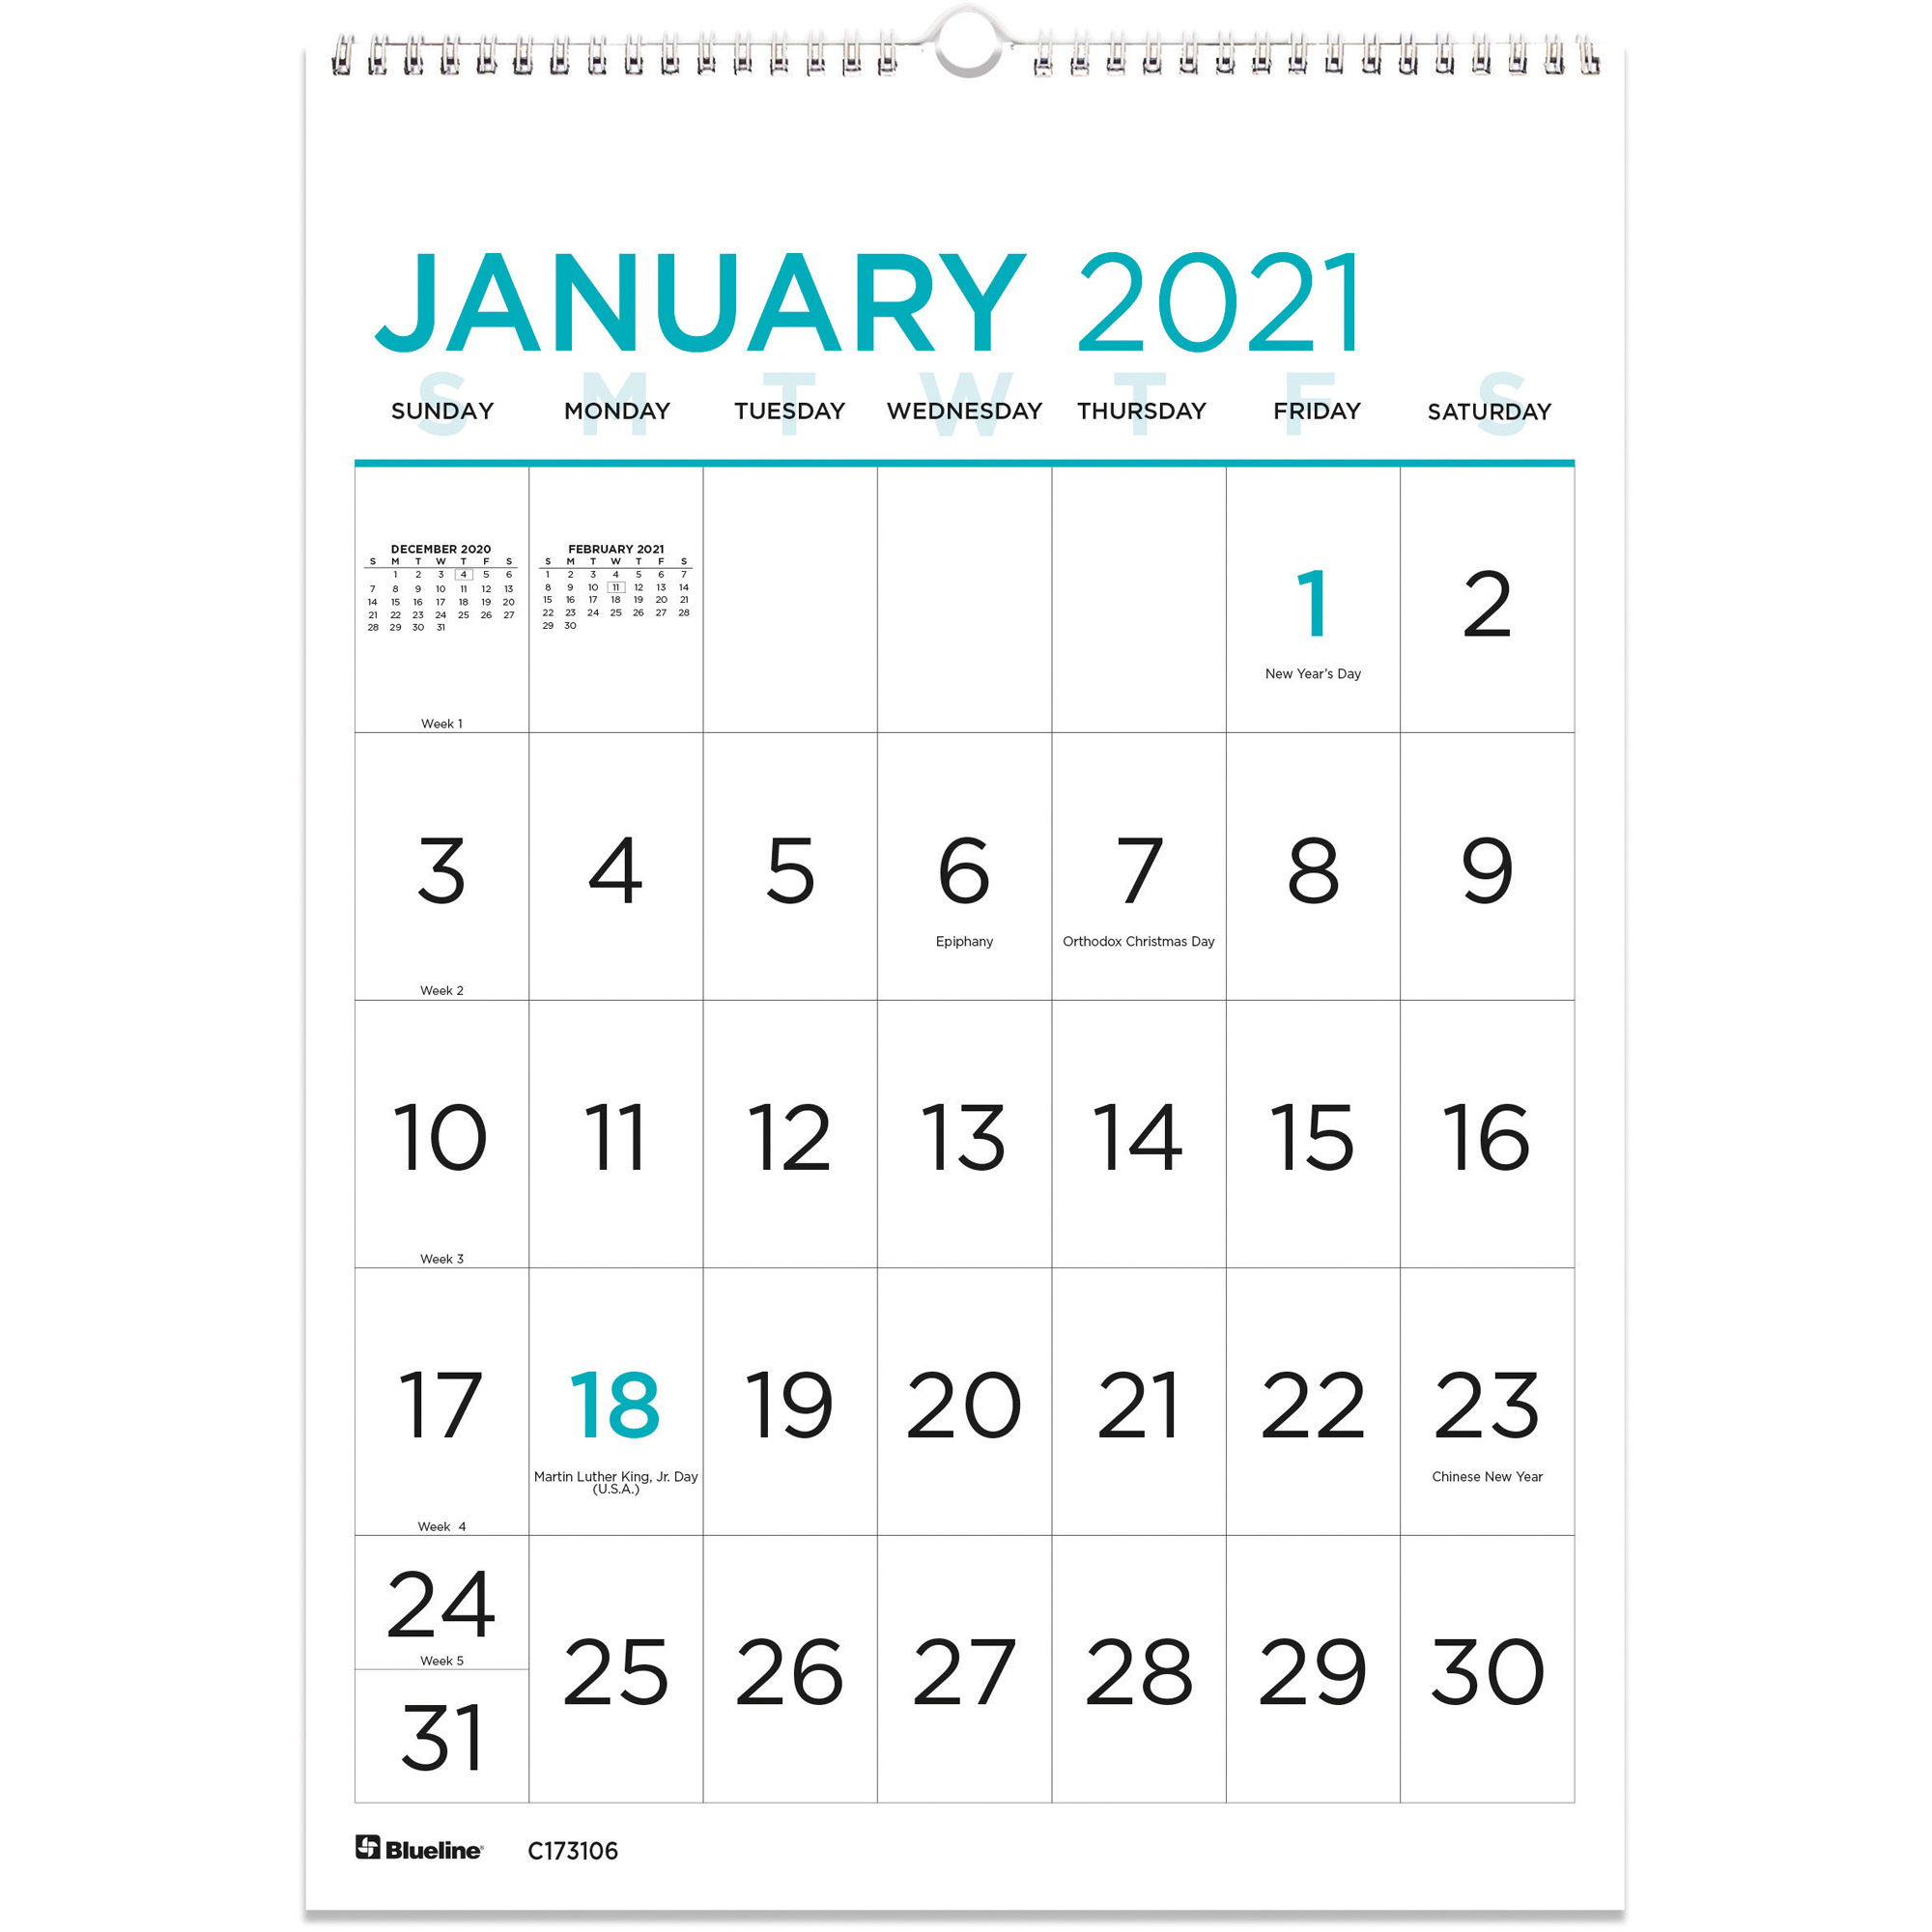 Blueline Large Print Wall Calendar - Monthly - 1 Year with 2021 Large Print Calendar Monthly